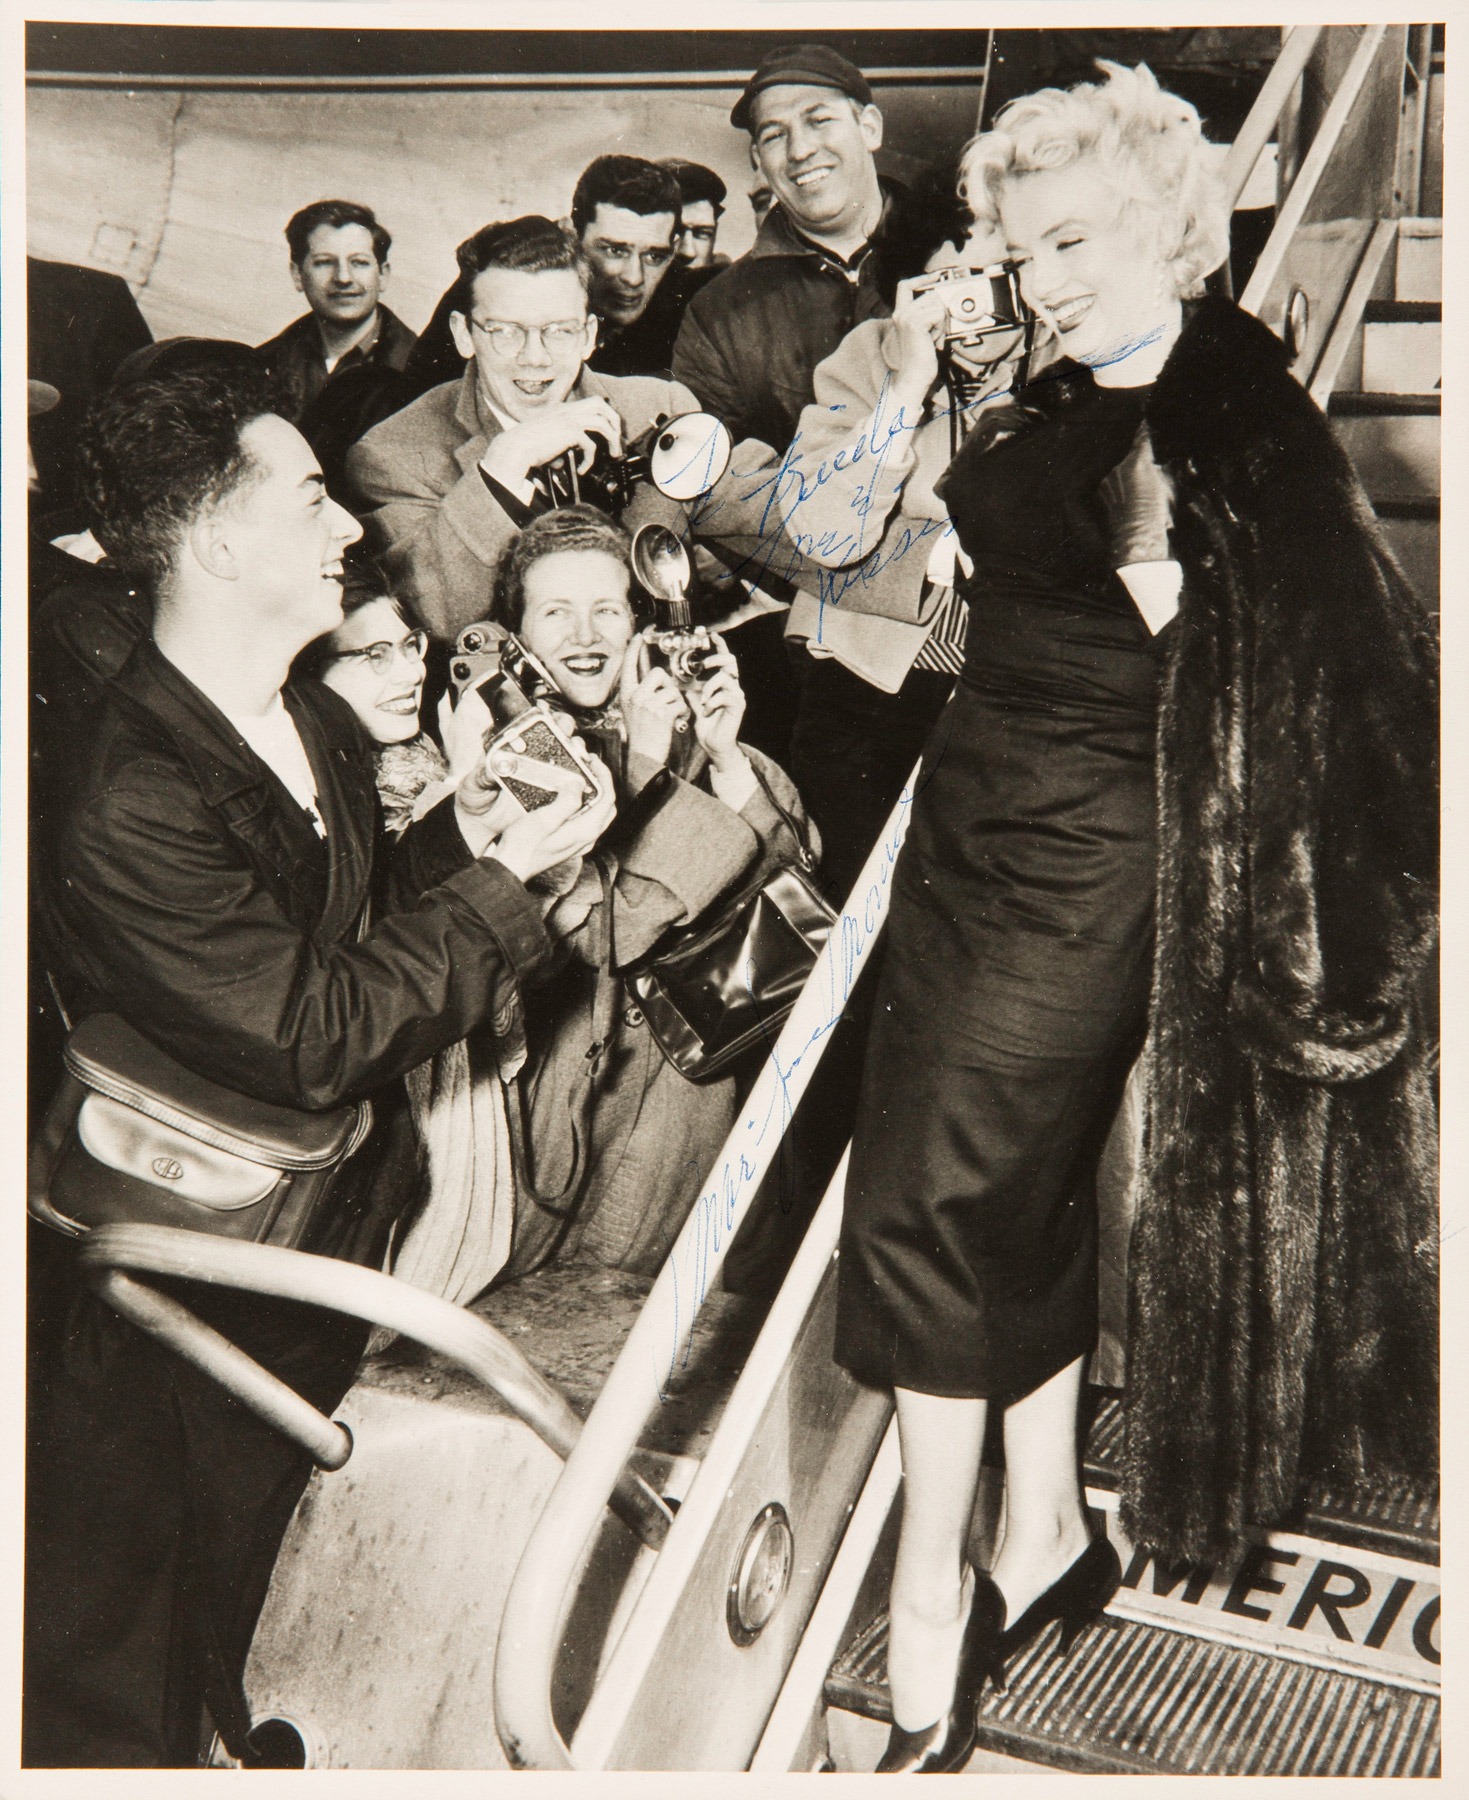 Marilyn Monroe as she boarded a plane for Hollywood at Idlewild Airport in New York on Feb. 25, 1956.